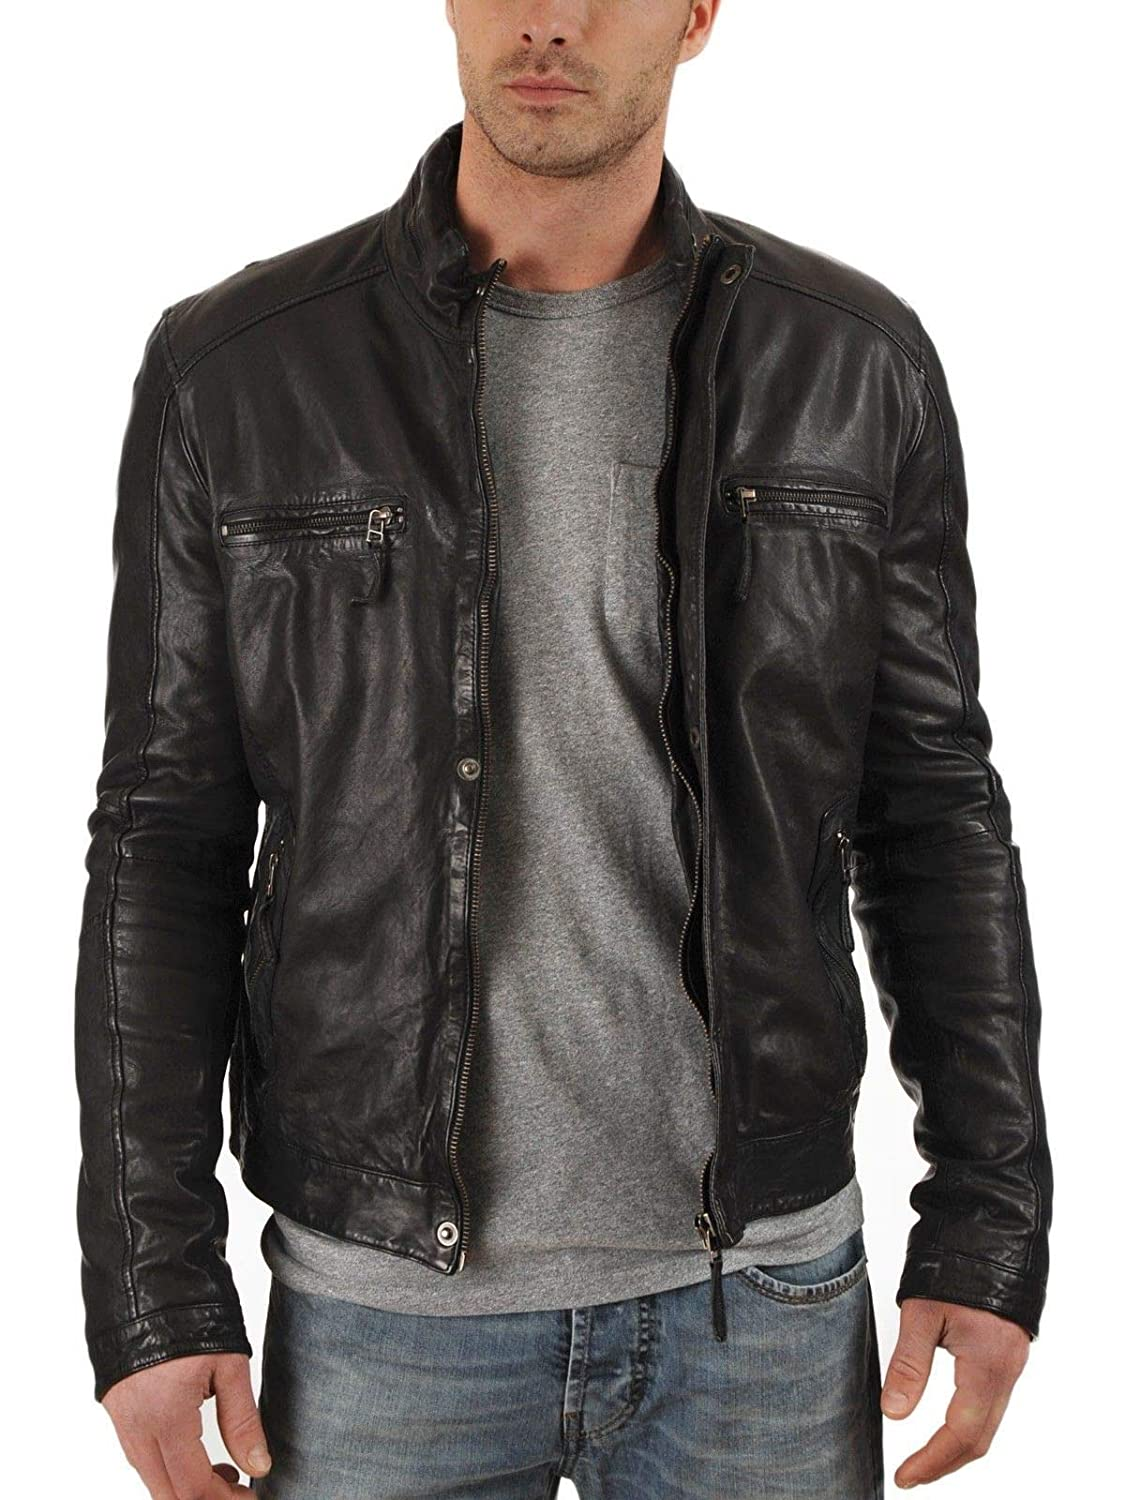 brandMe Mens Genuine Leather Pure Lambskin Biker Jacket MM94